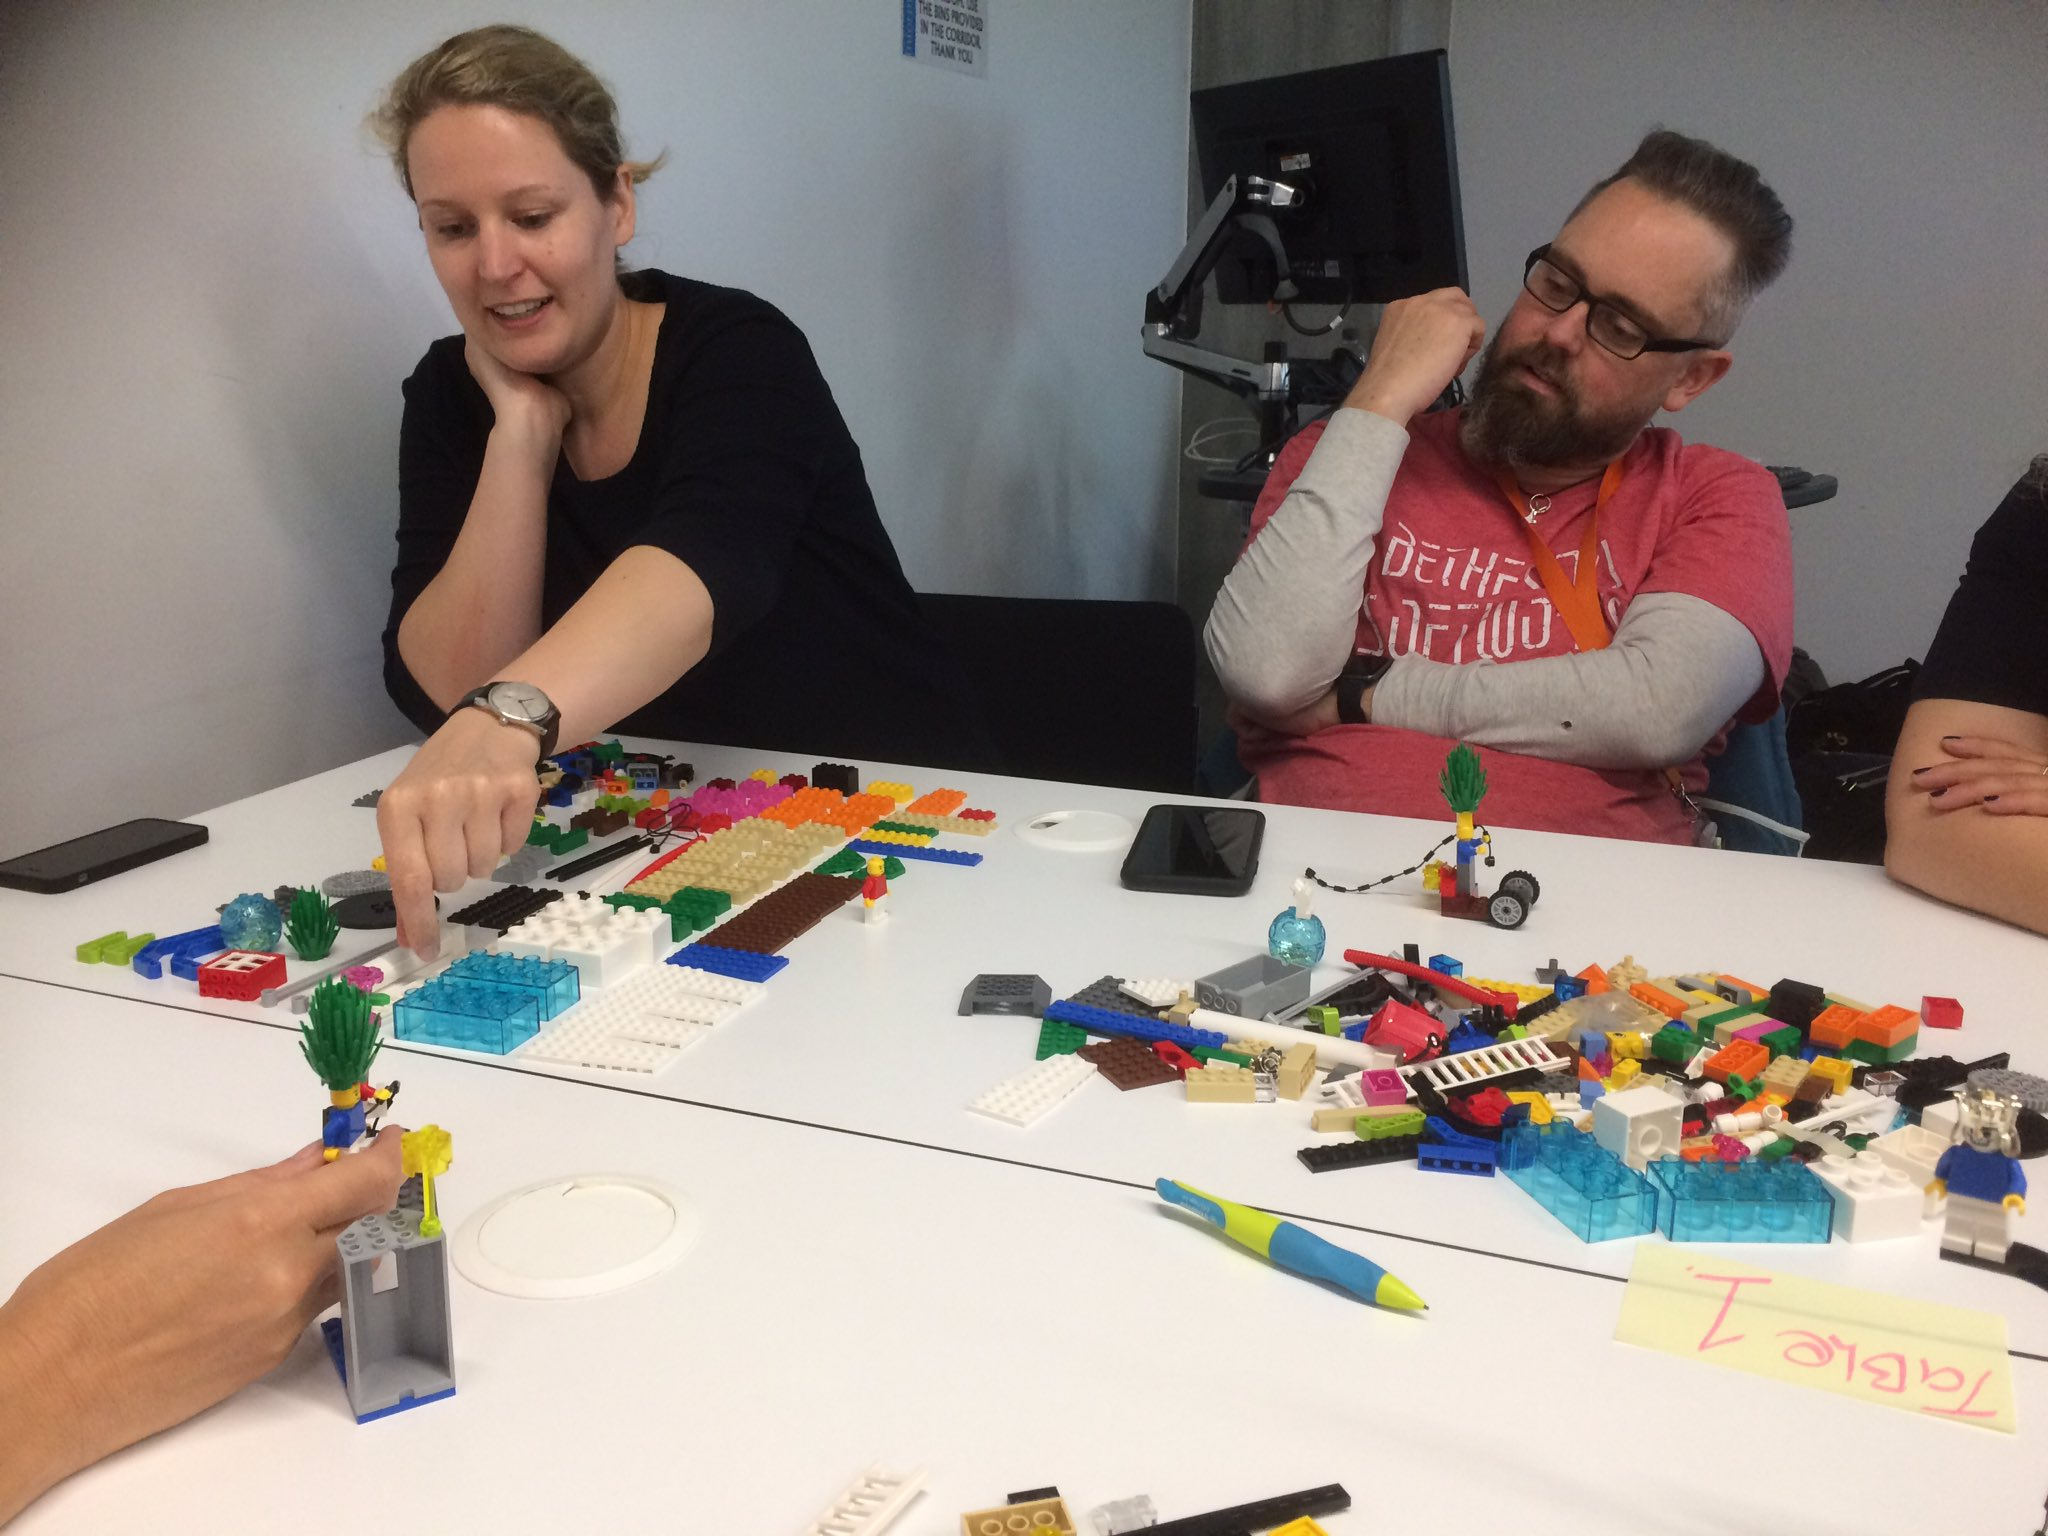 Lego Serious Play therapy session. Reflecting on my role in a team. @playlearnconf #Playlearn17 https://t.co/AGSnCfHroX